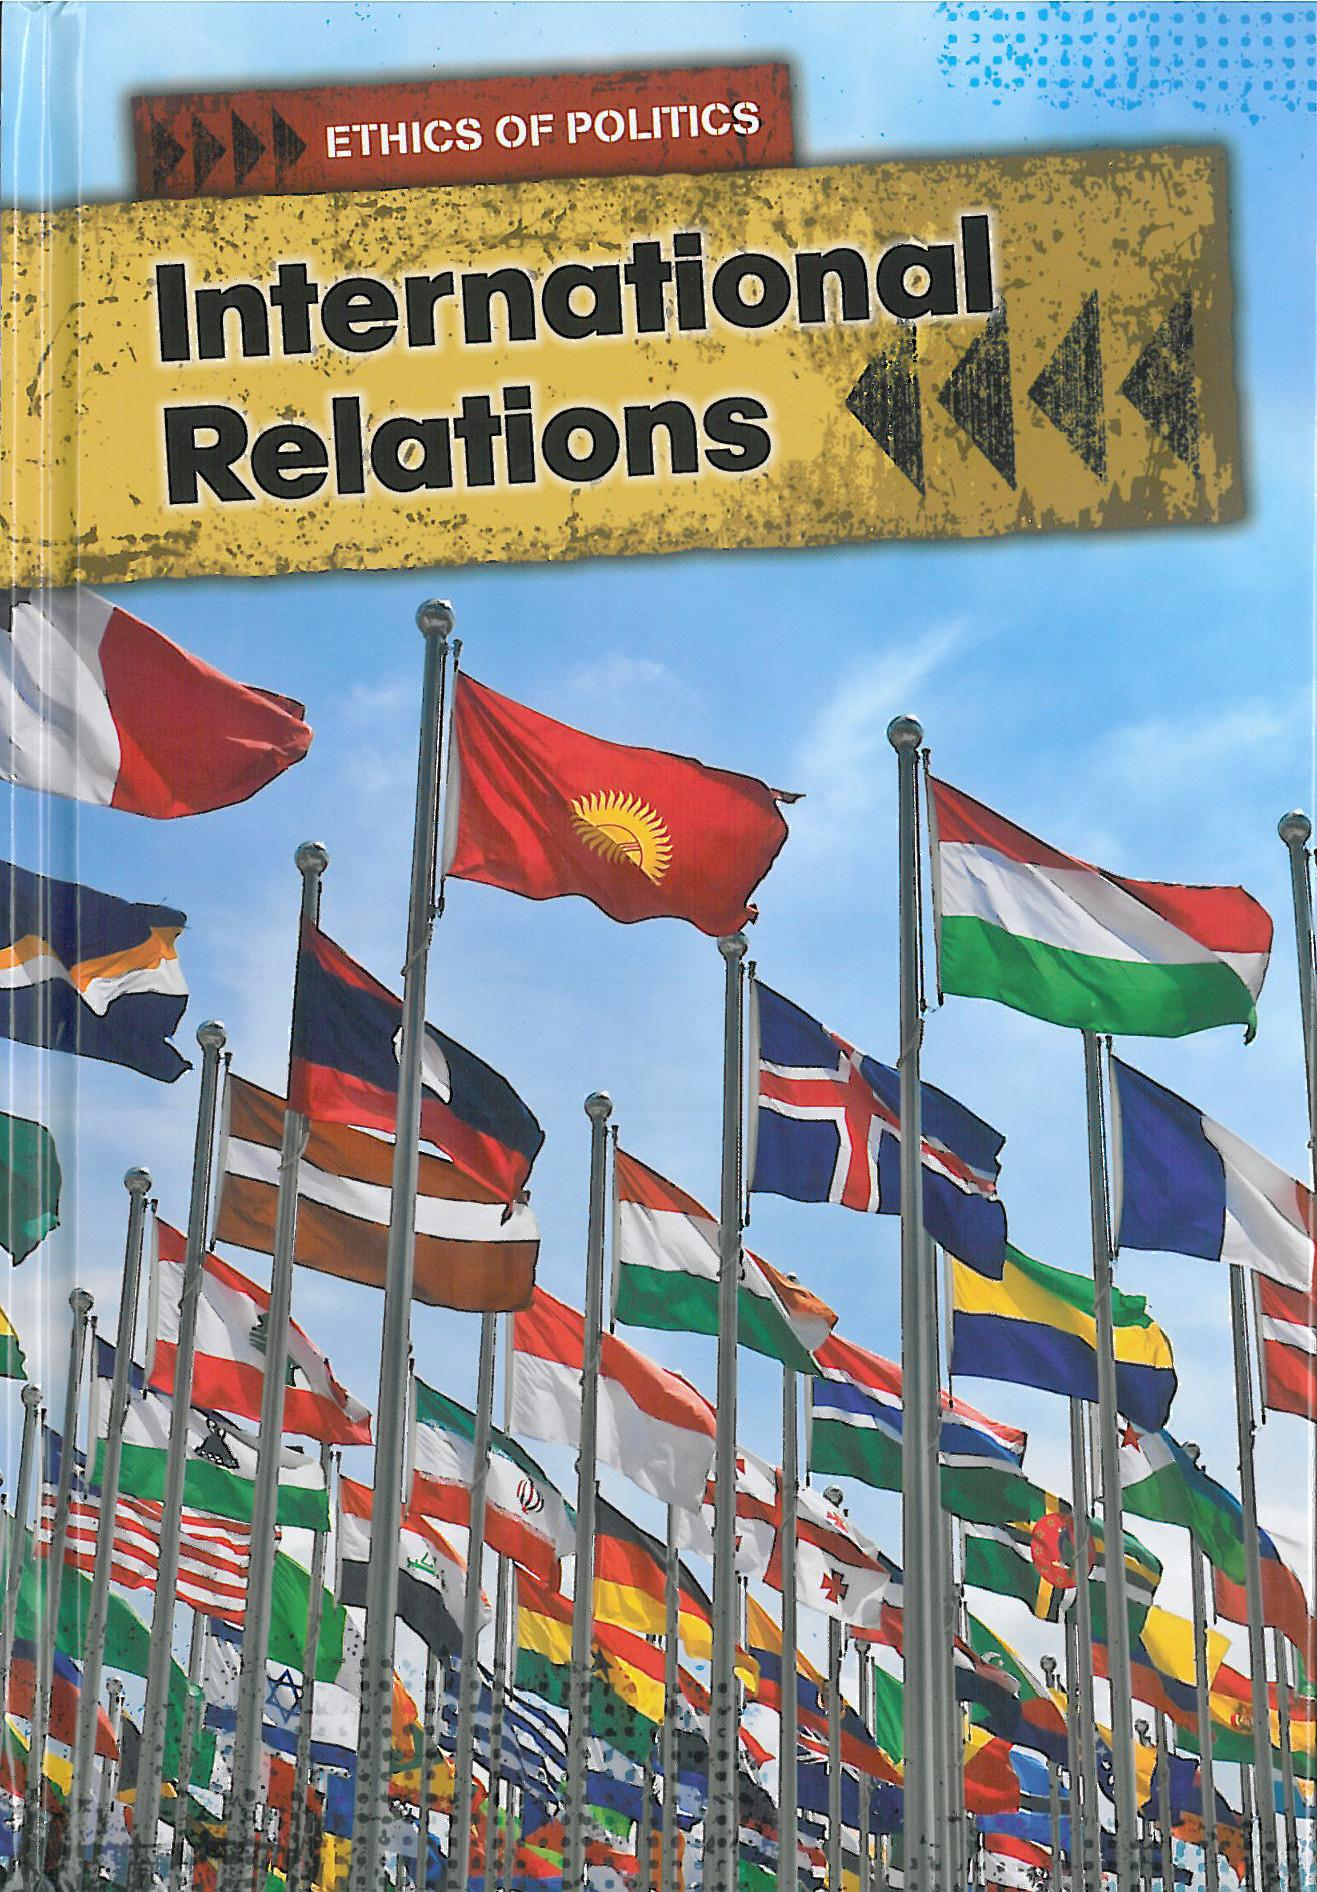 Ethics of Politics - International Relations